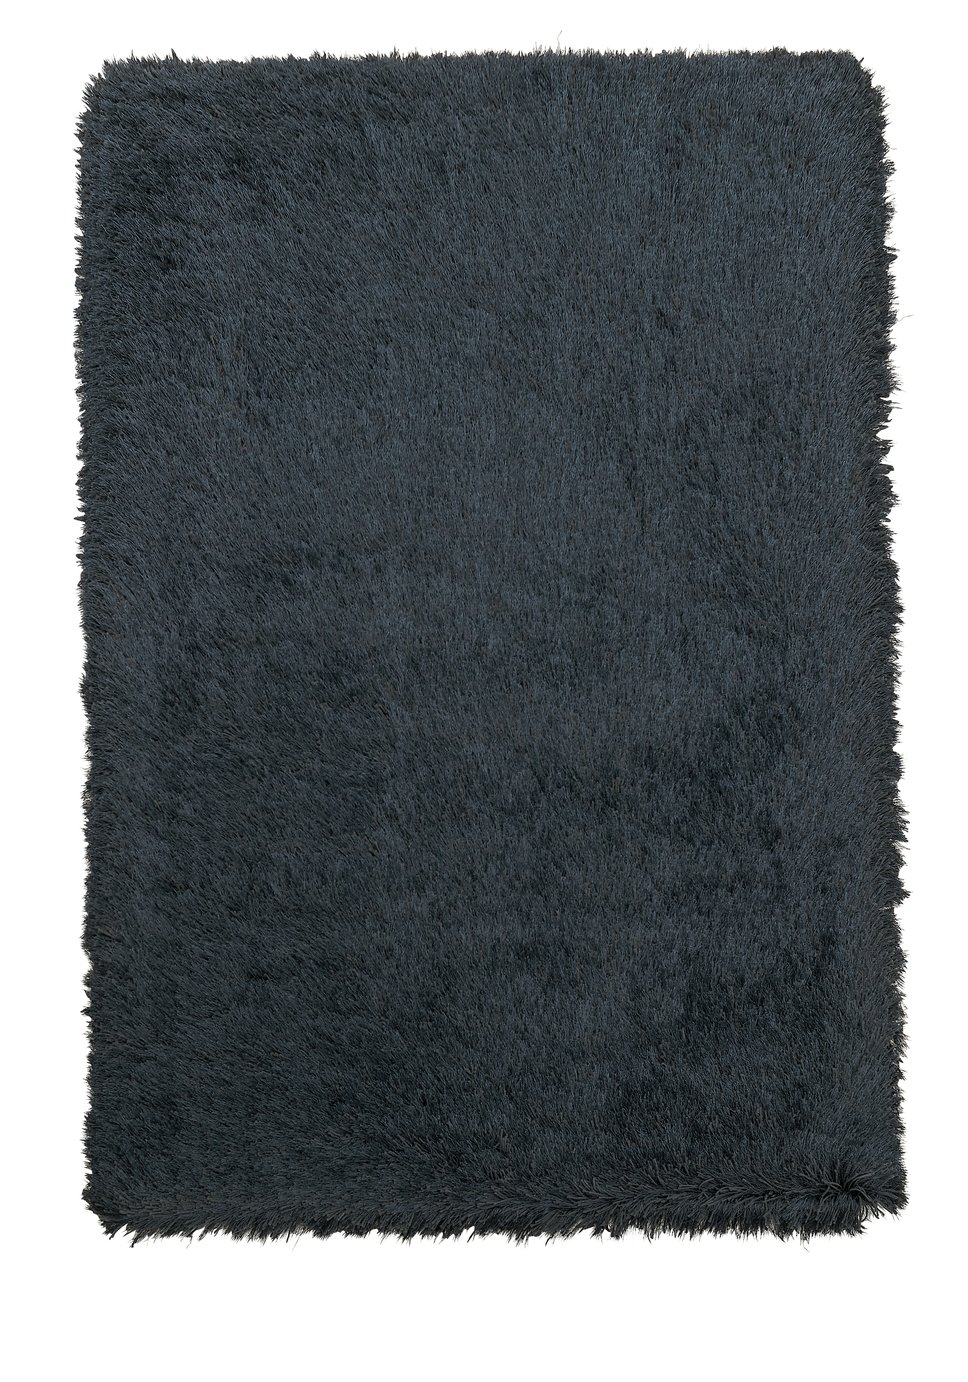 Argos Home Bliss Deep Pile Shaggy Rug - 200x290cm - Black